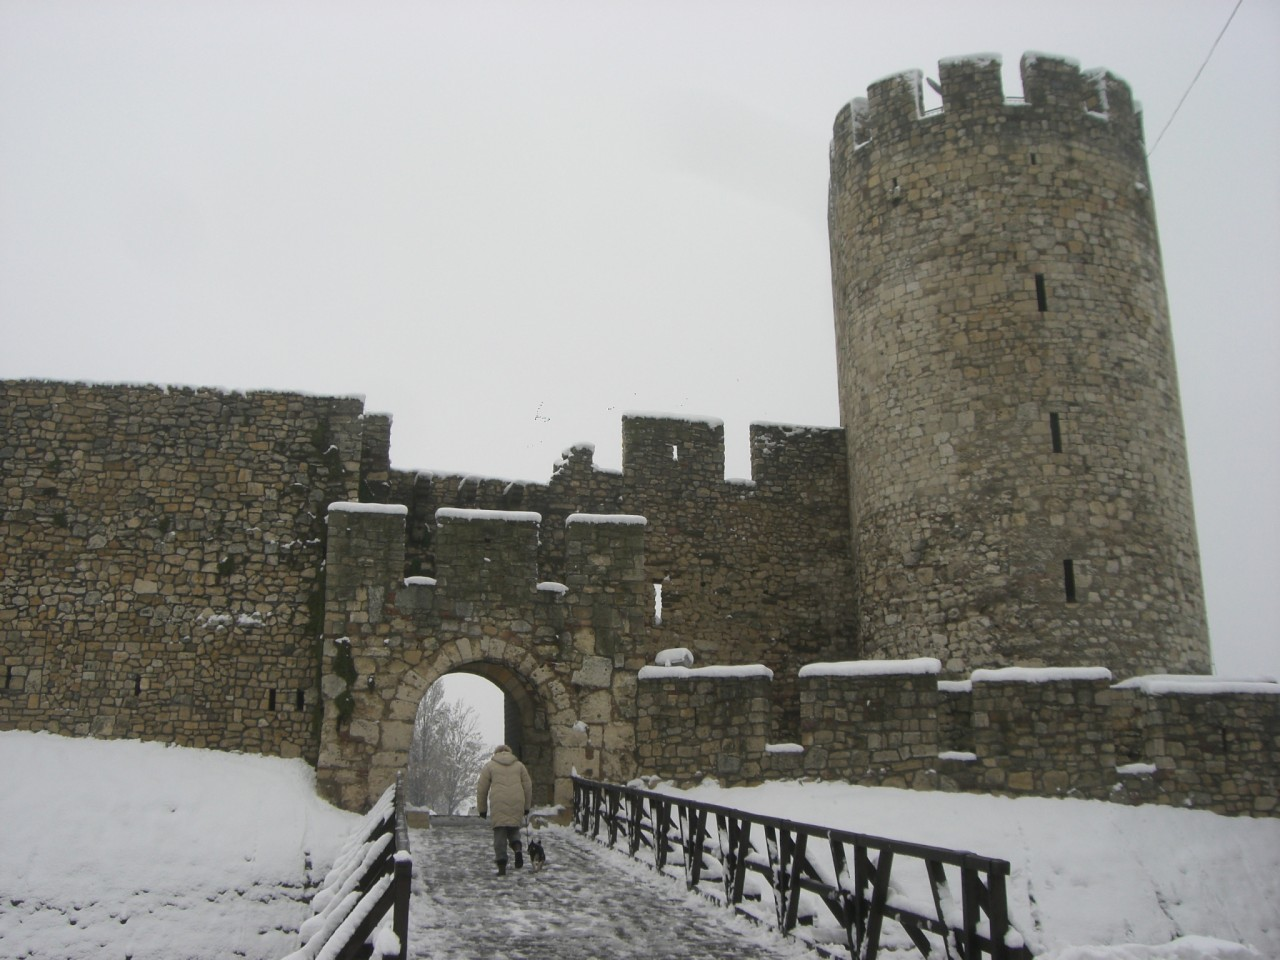 Castle in the snow